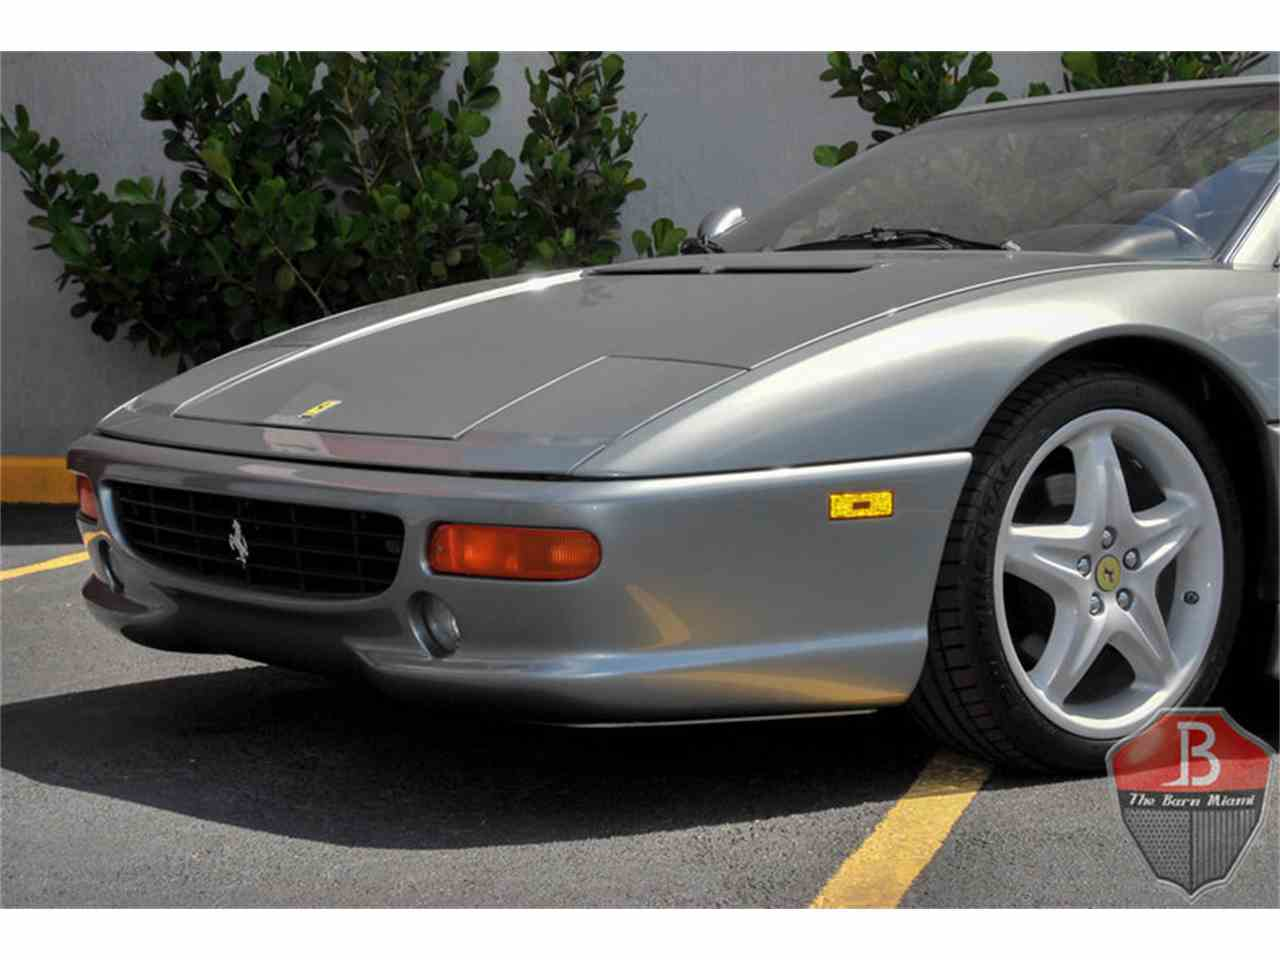 Large Picture of '97 Ferrari 355 located in Miami Florida - $74,900.00 Offered by The Barn Miami - IZWQ